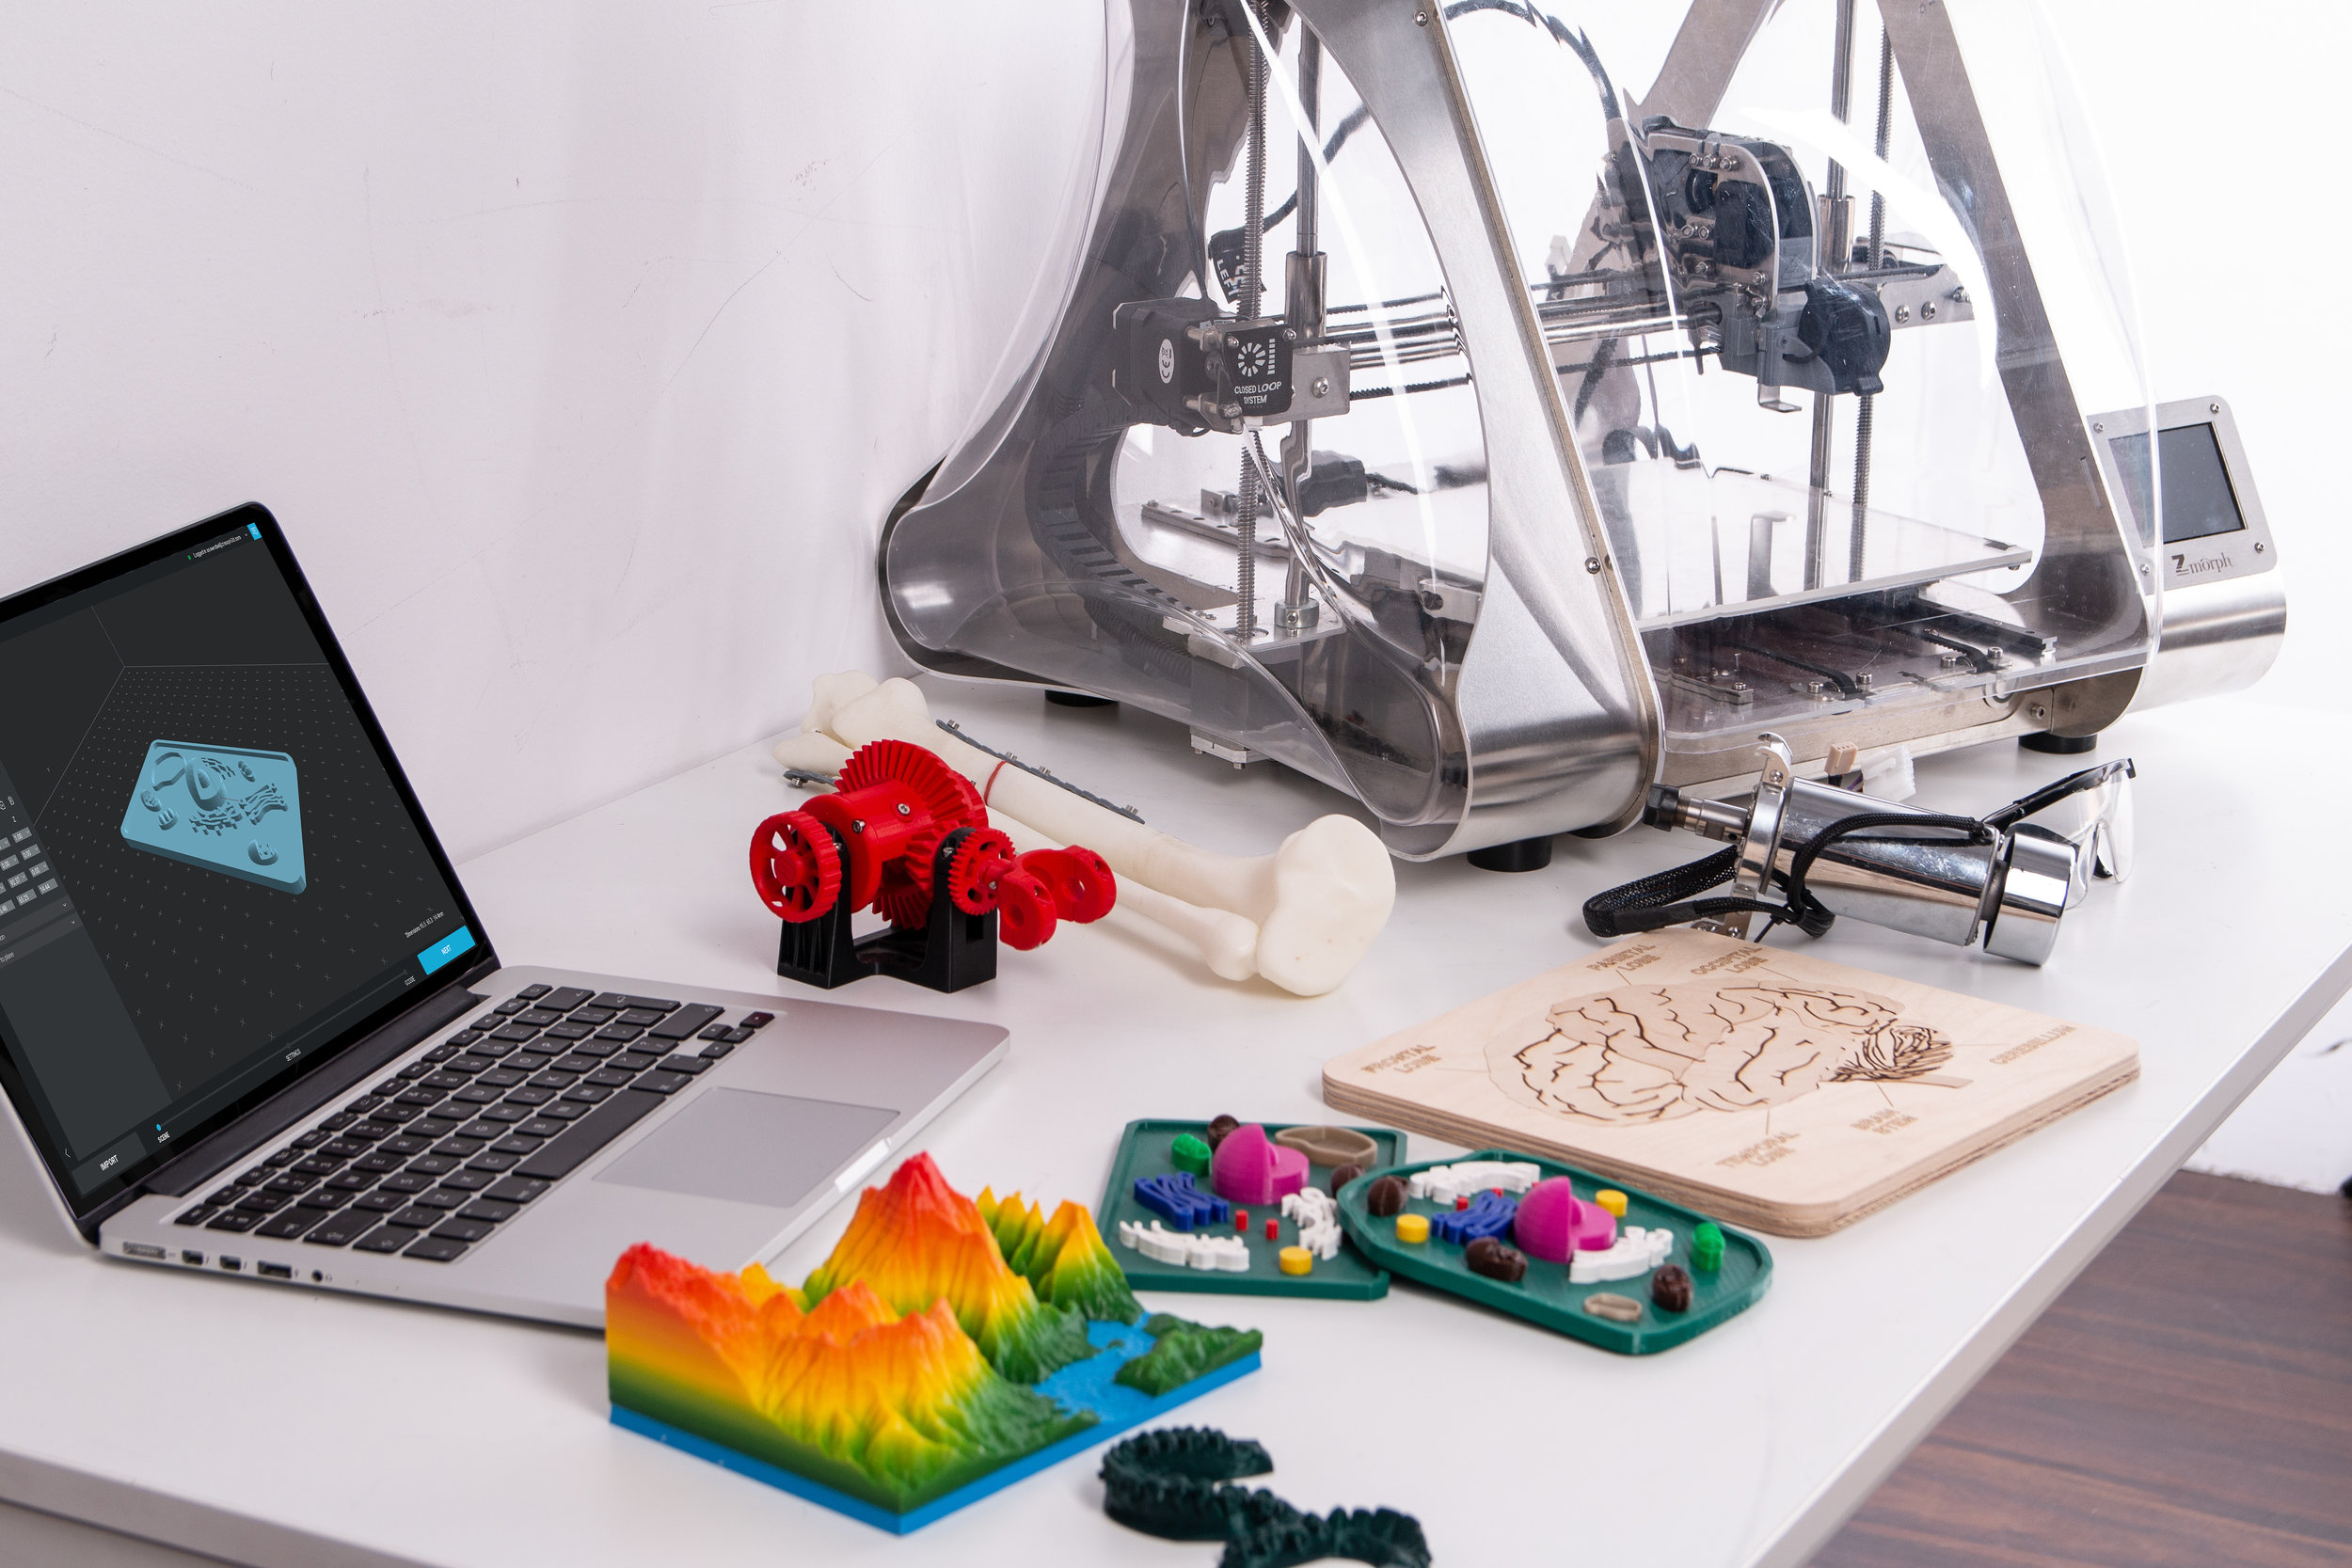 How are the Dolls Made? - A look inside 3D modeling and 3D printing